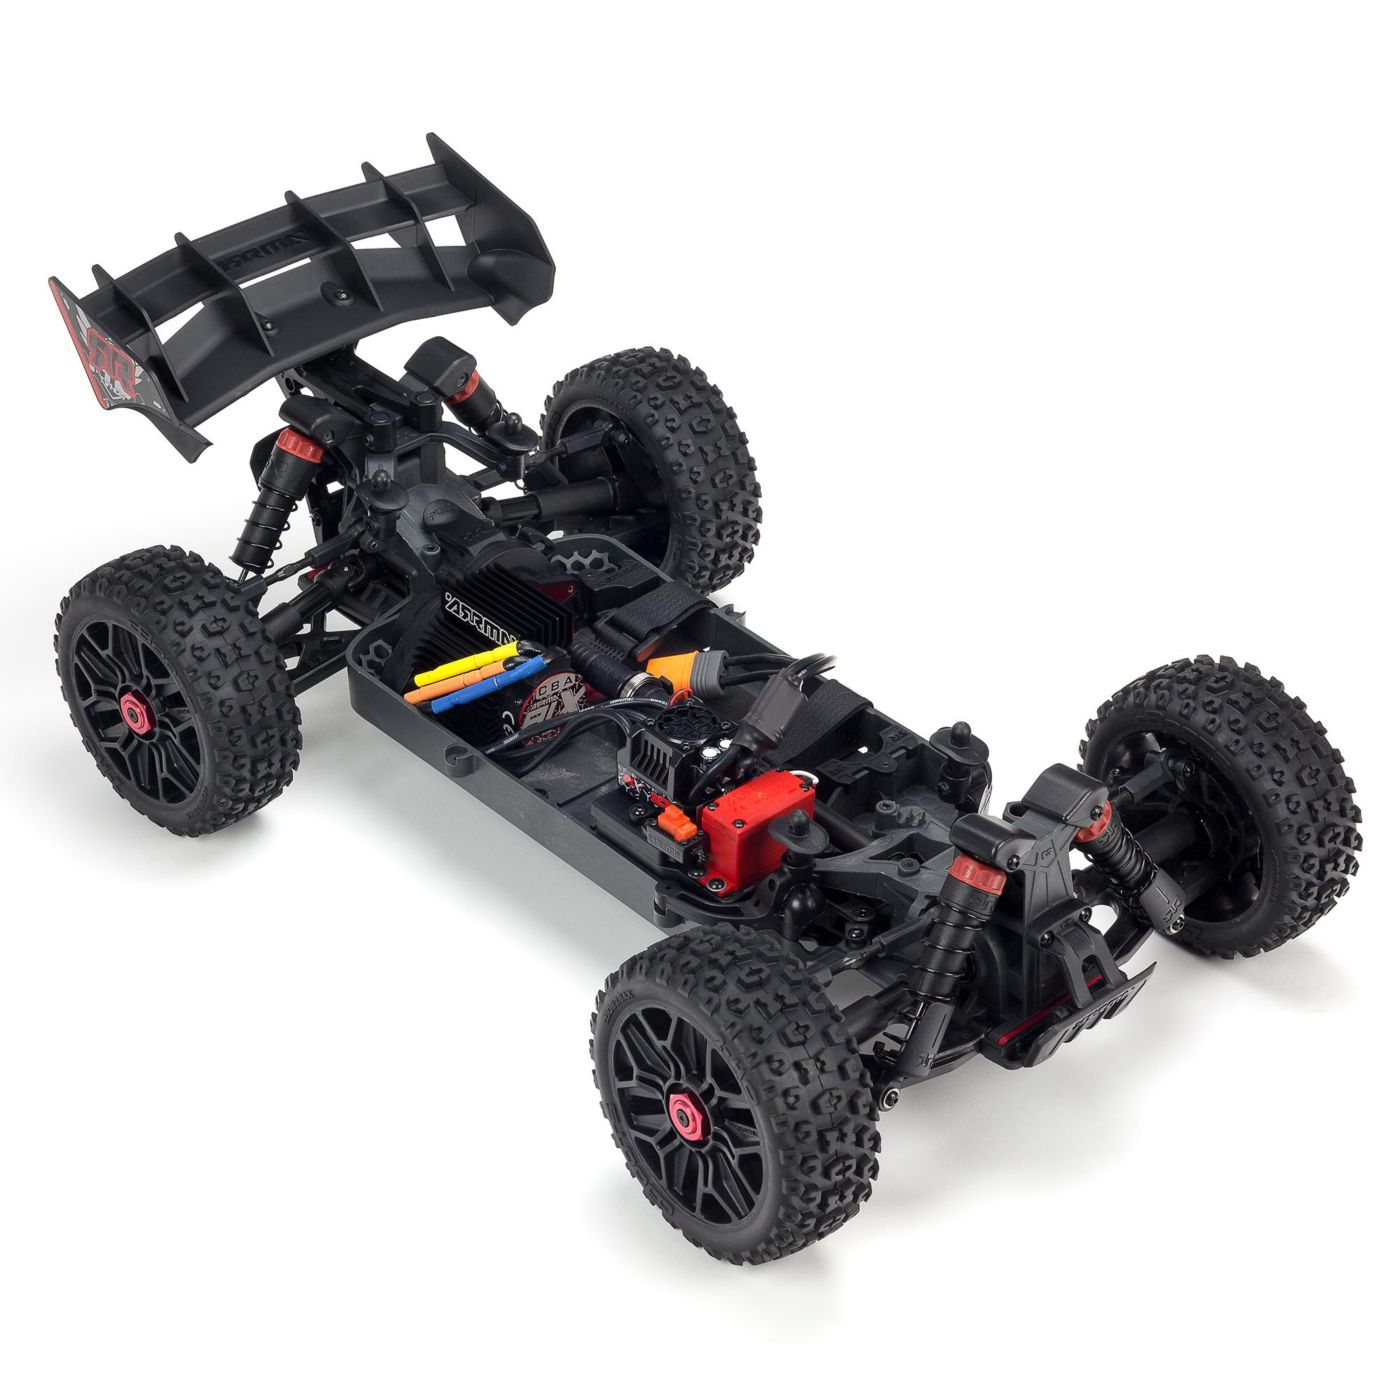 Arrma Typhon 3s Brushless 4wd Buggy rtr 03